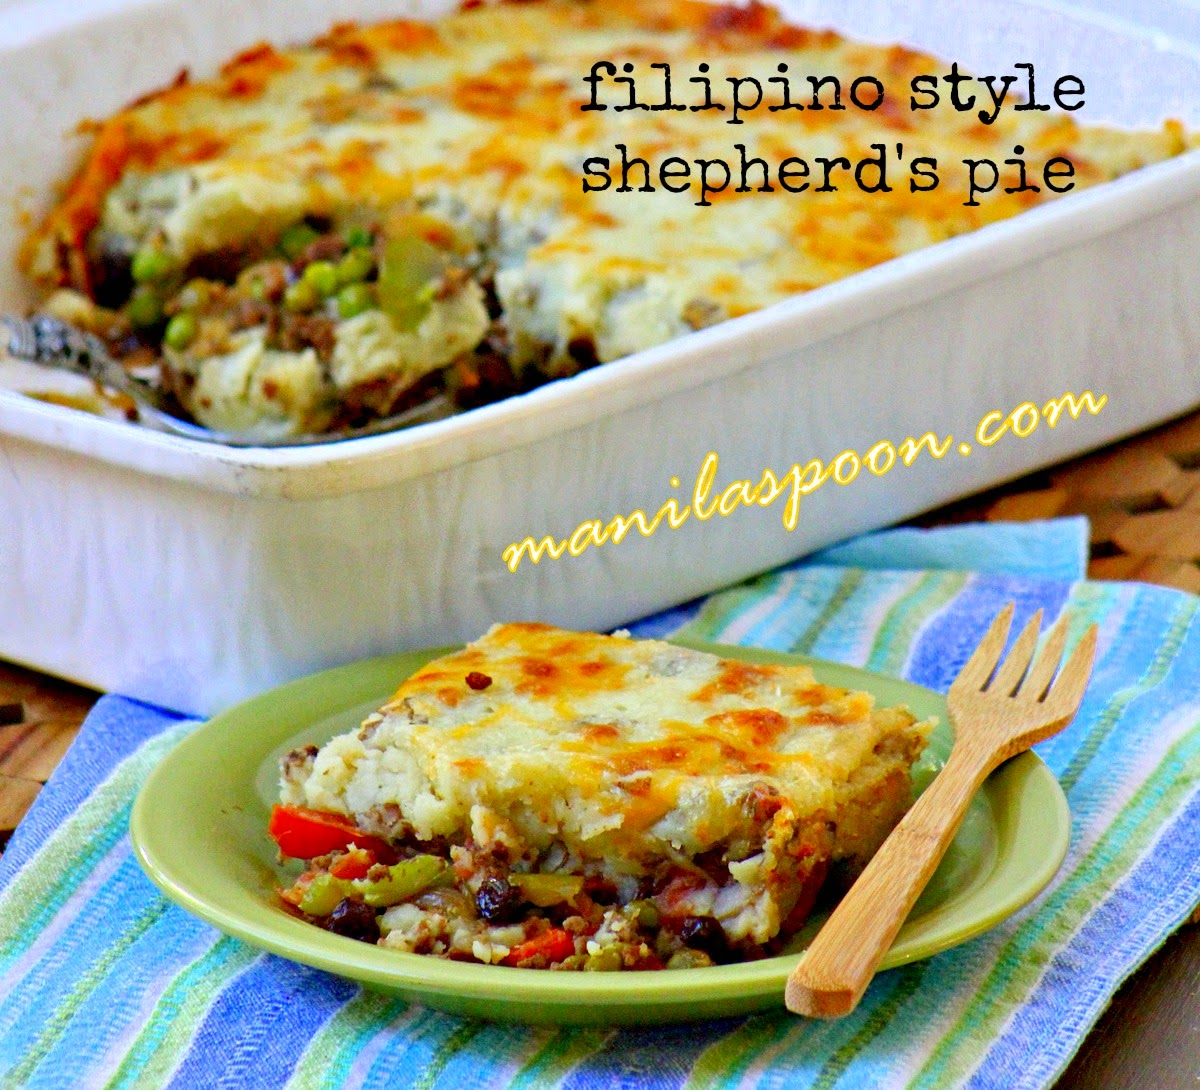 Shepherd's Pie (Filipino-style)